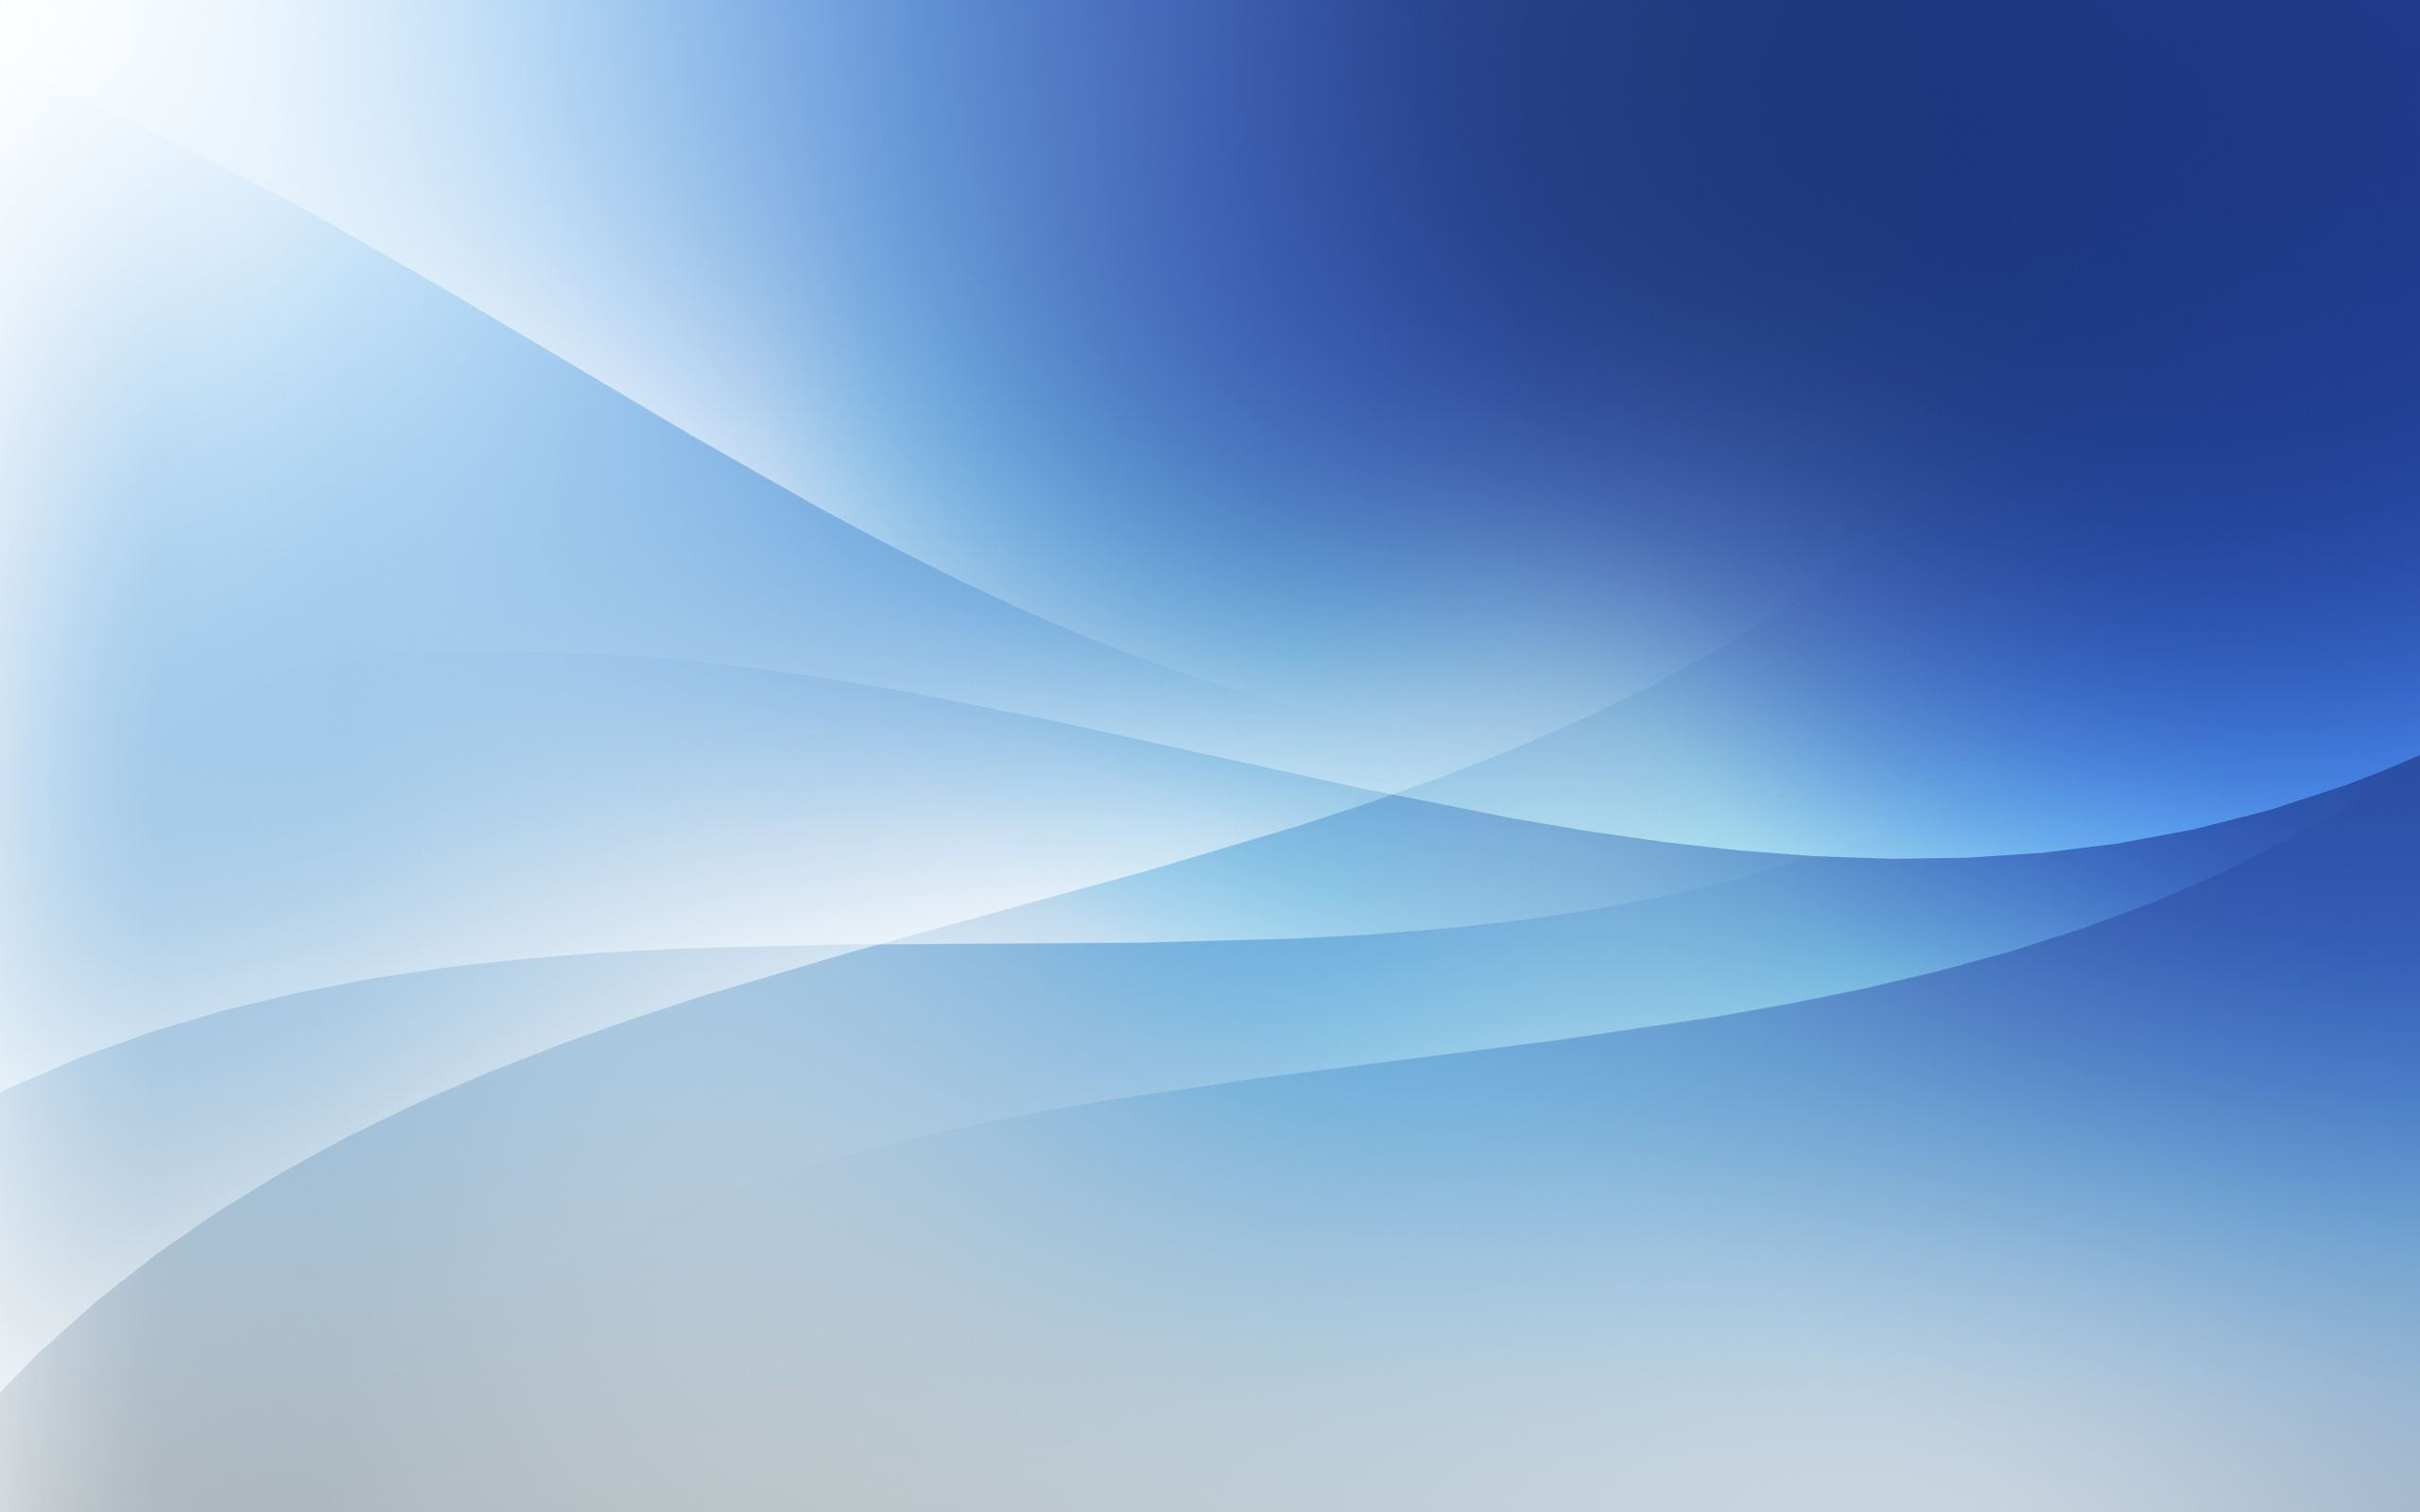 2560x1600 White And Blue Wallpapers (19 Wallpapers)